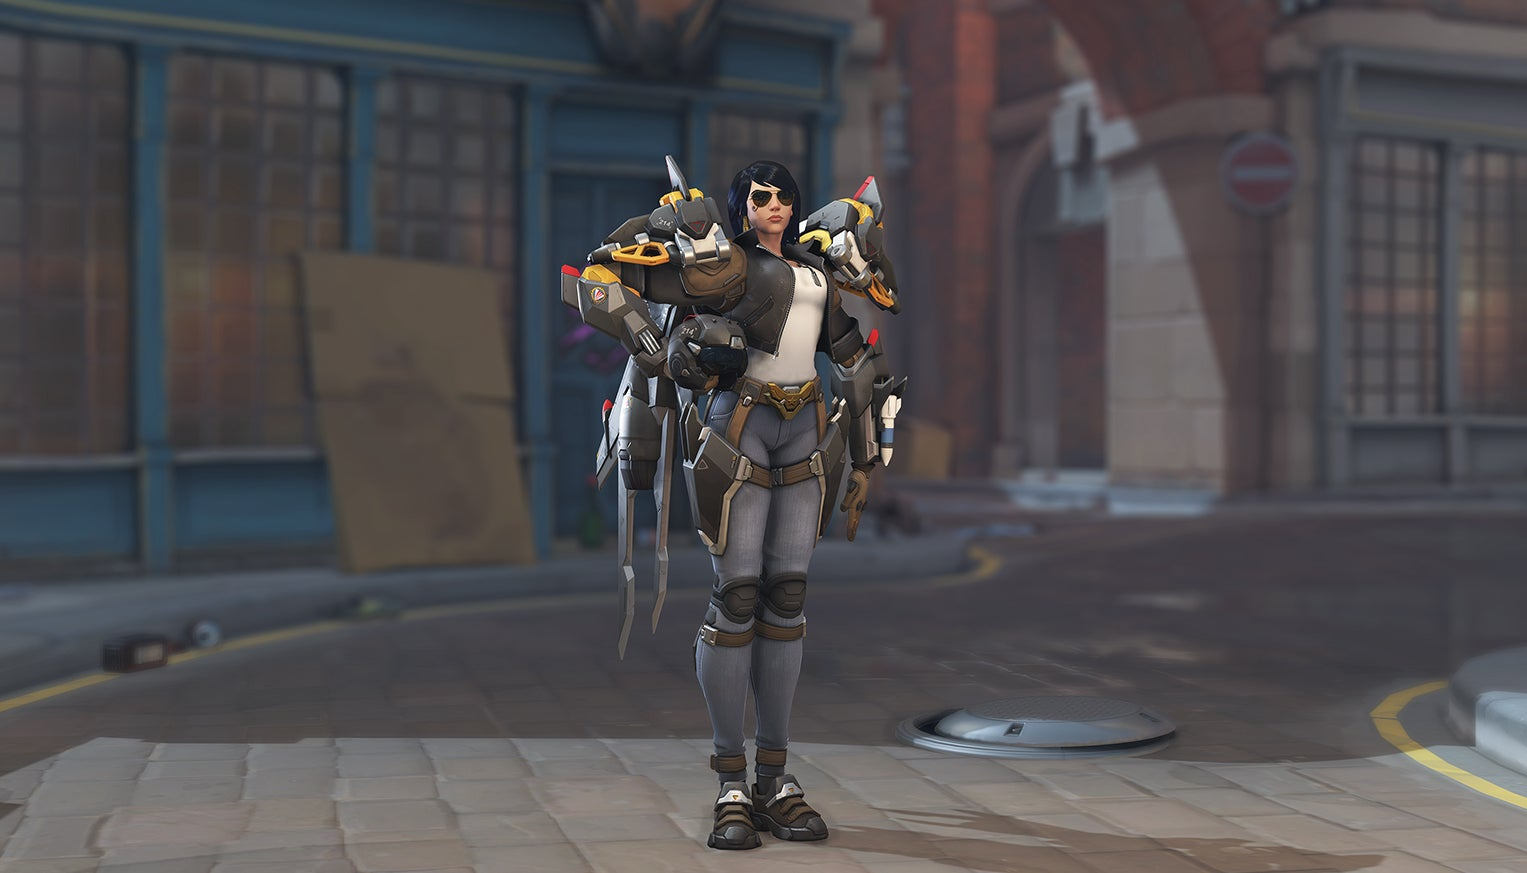 Overwatch's New Skins Are So Good They Have Made Me Care About Skins